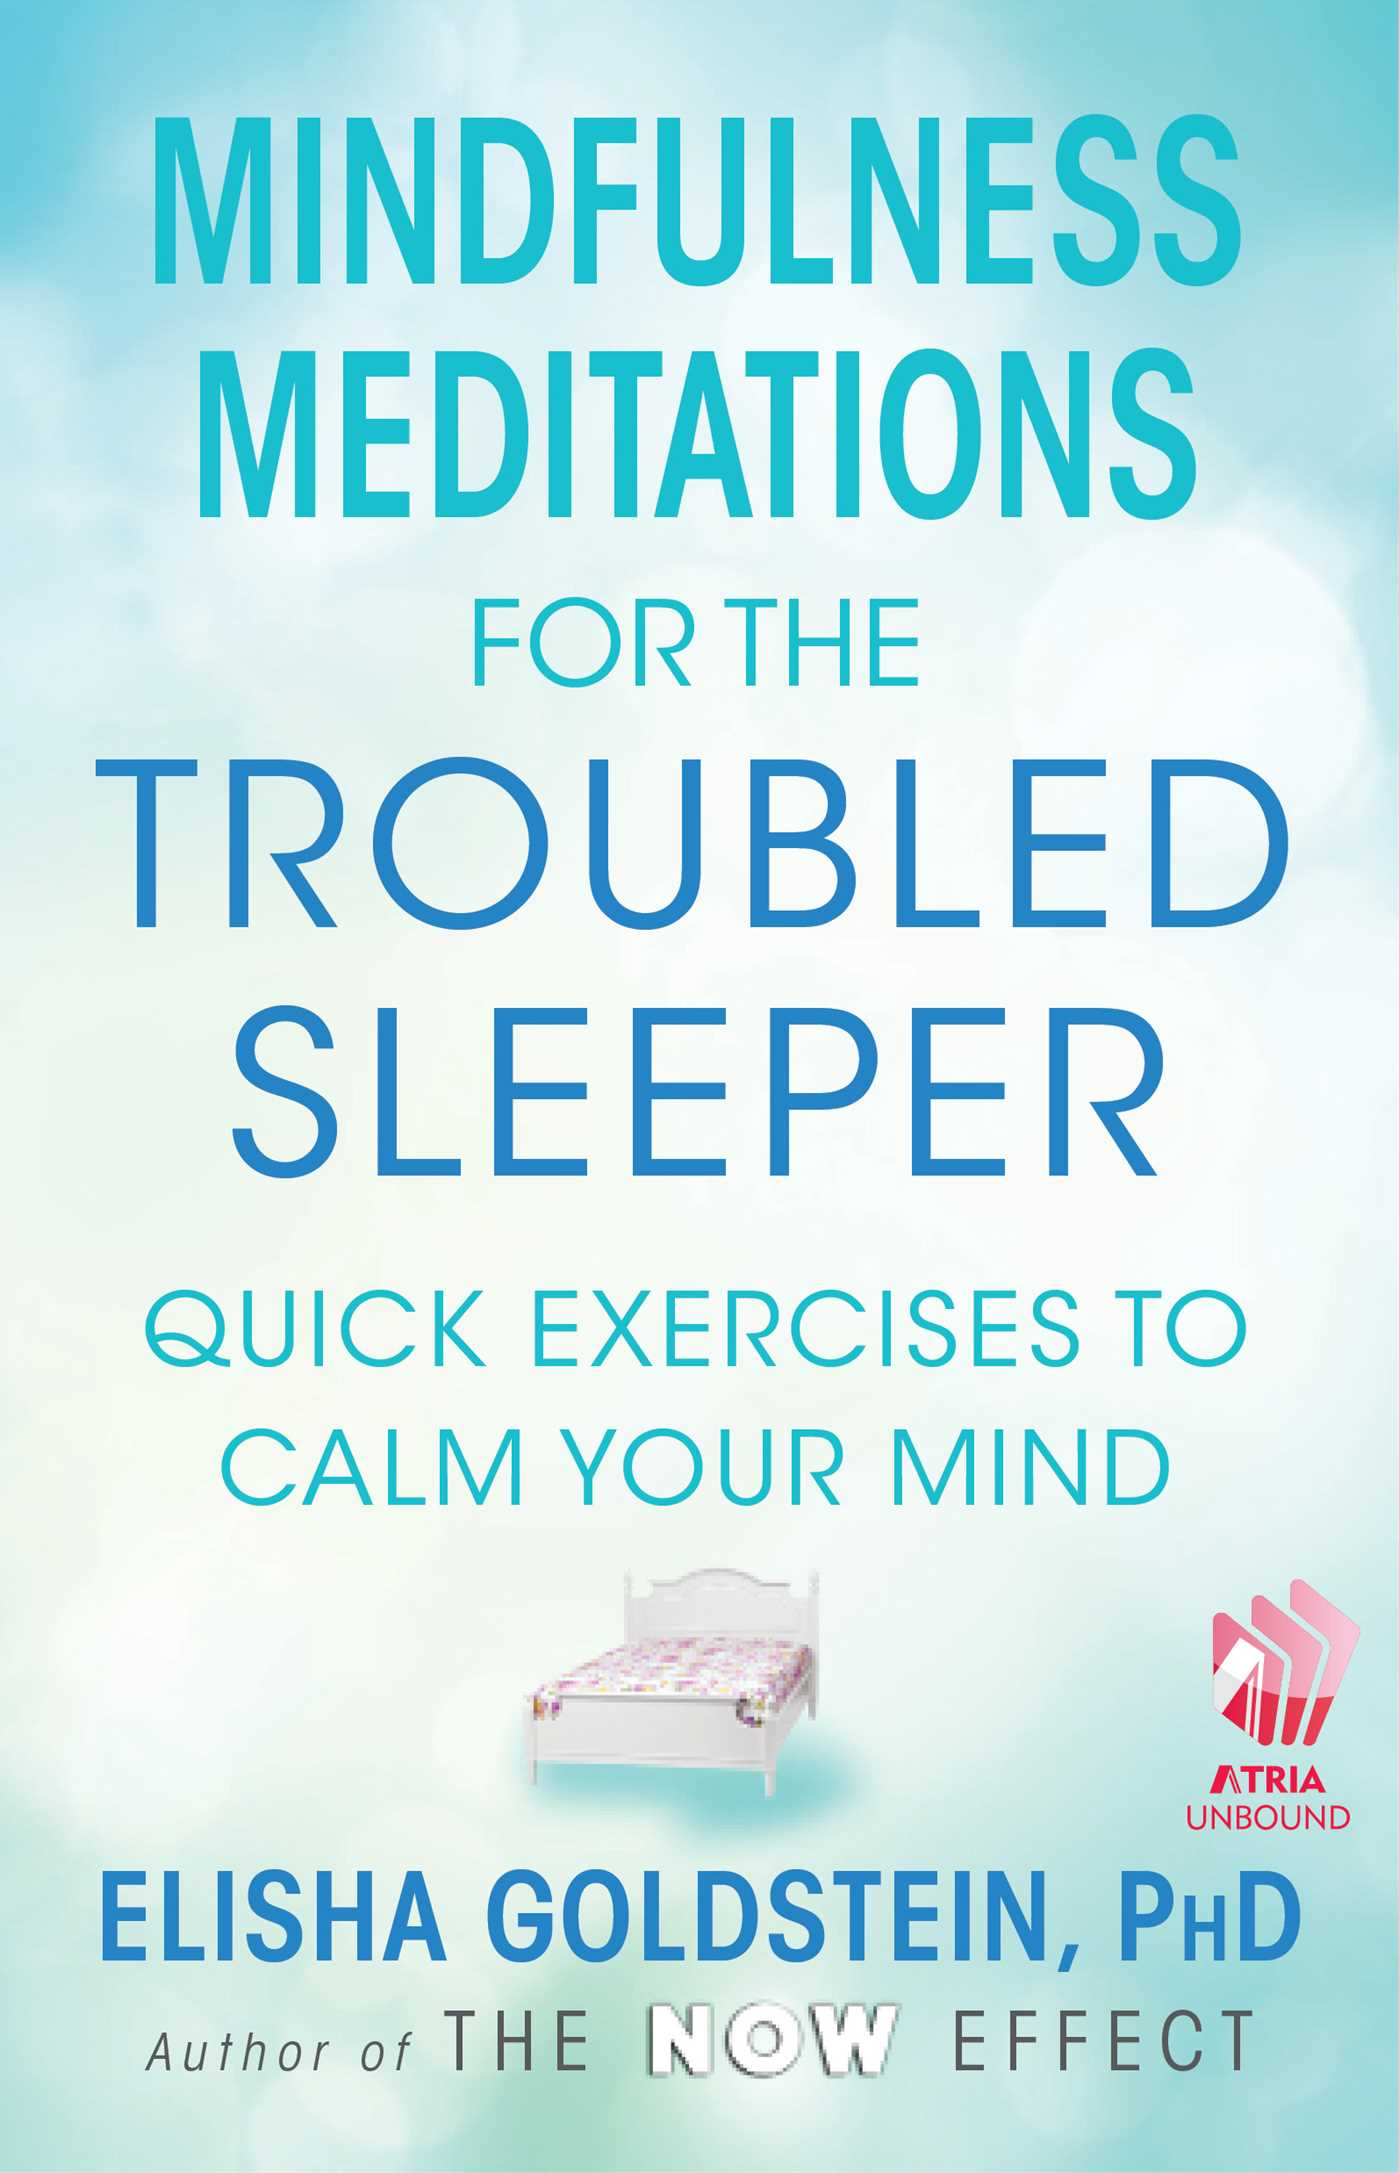 Mindfulness-meditations-for-the-troubled-sleeper-9781451698121_hr